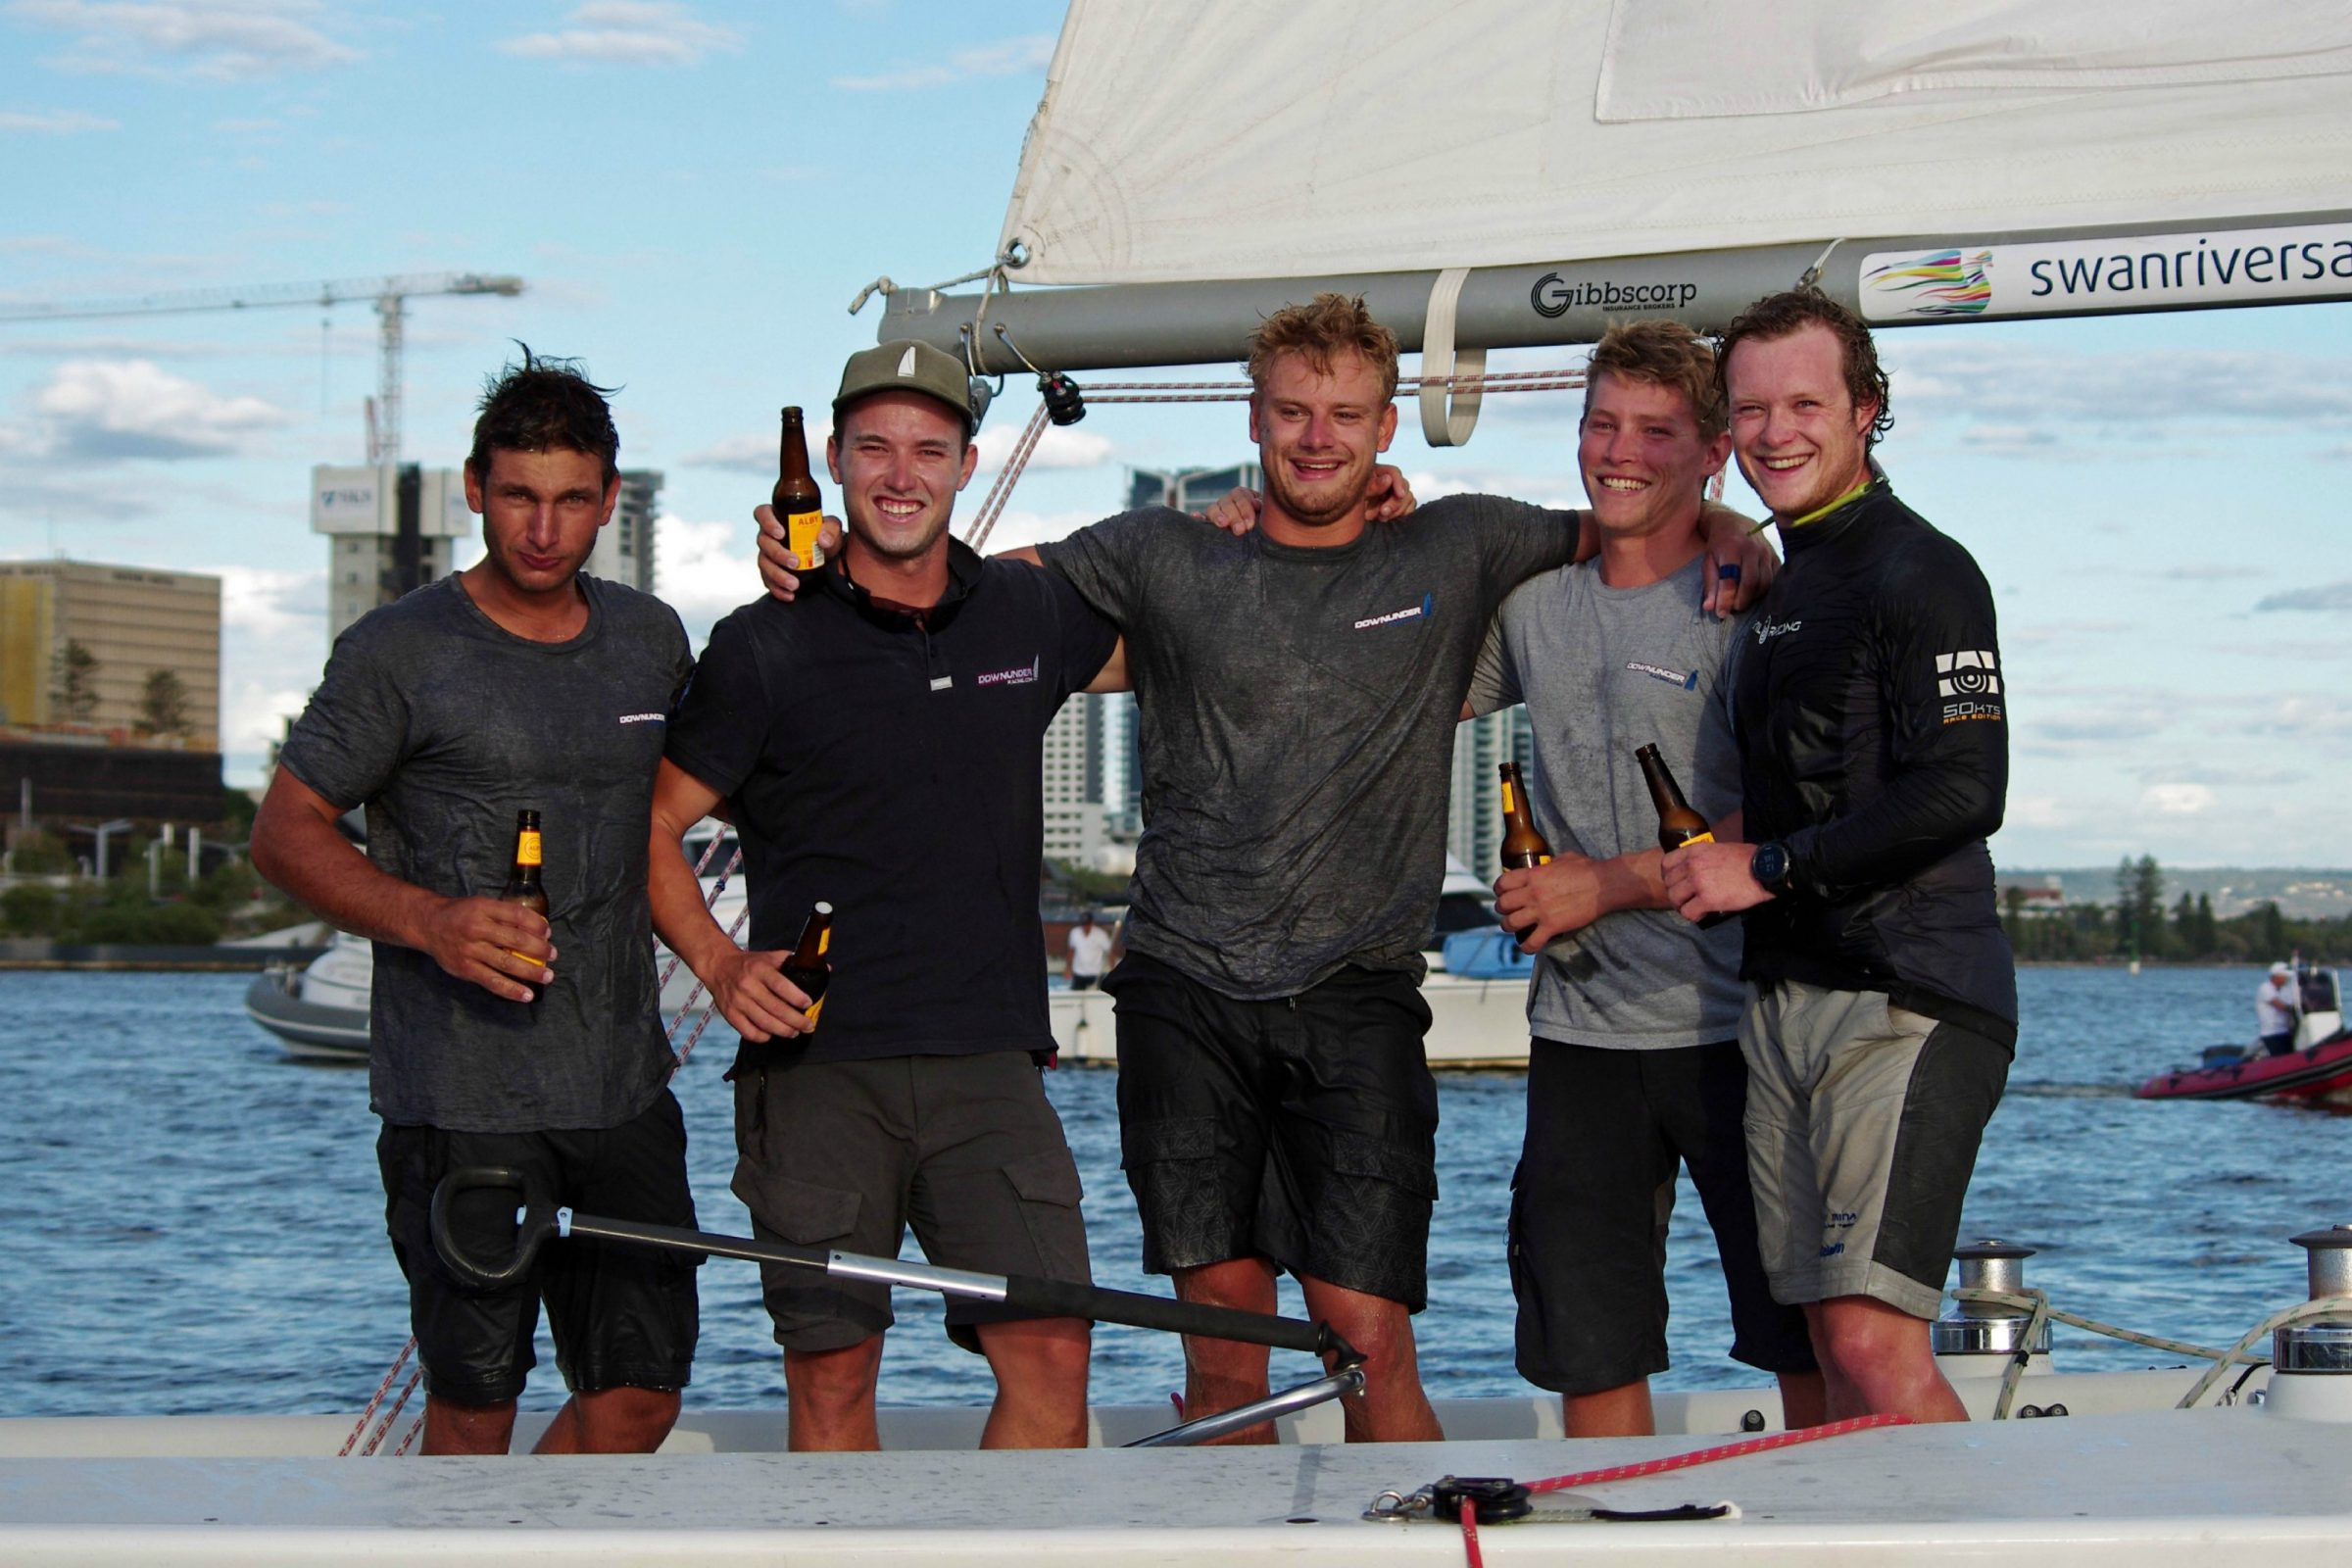 downunder racing, skippered by harry price from the cruising yacht club of australia, winners of the 2018 warren jones international youth regatta, sponsored by the city of perth, organised by swan river sailing, an iconic youth match racing regatta in perth, western australia